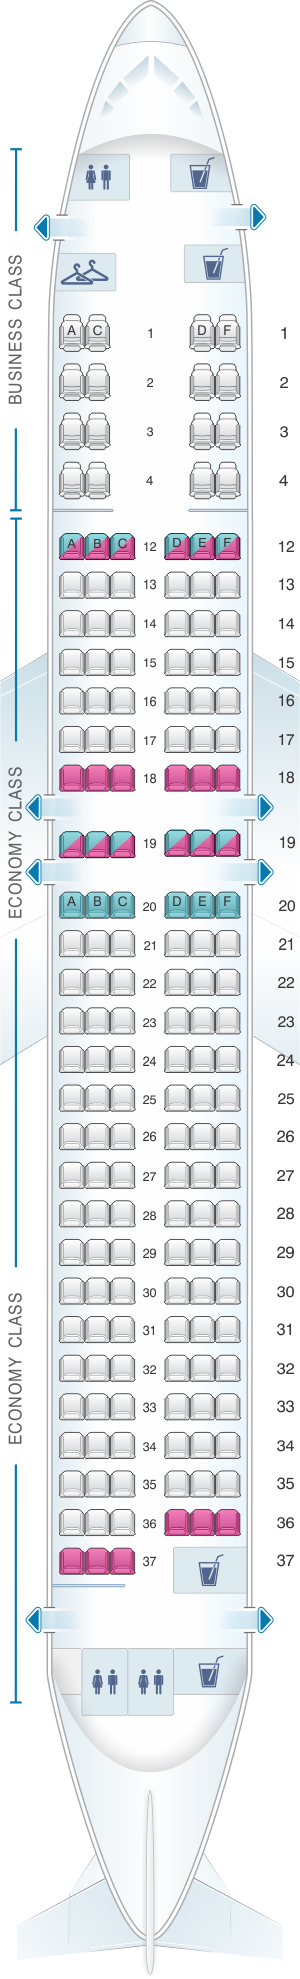 Seat map for Air Canada Boeing B737 MAX 8